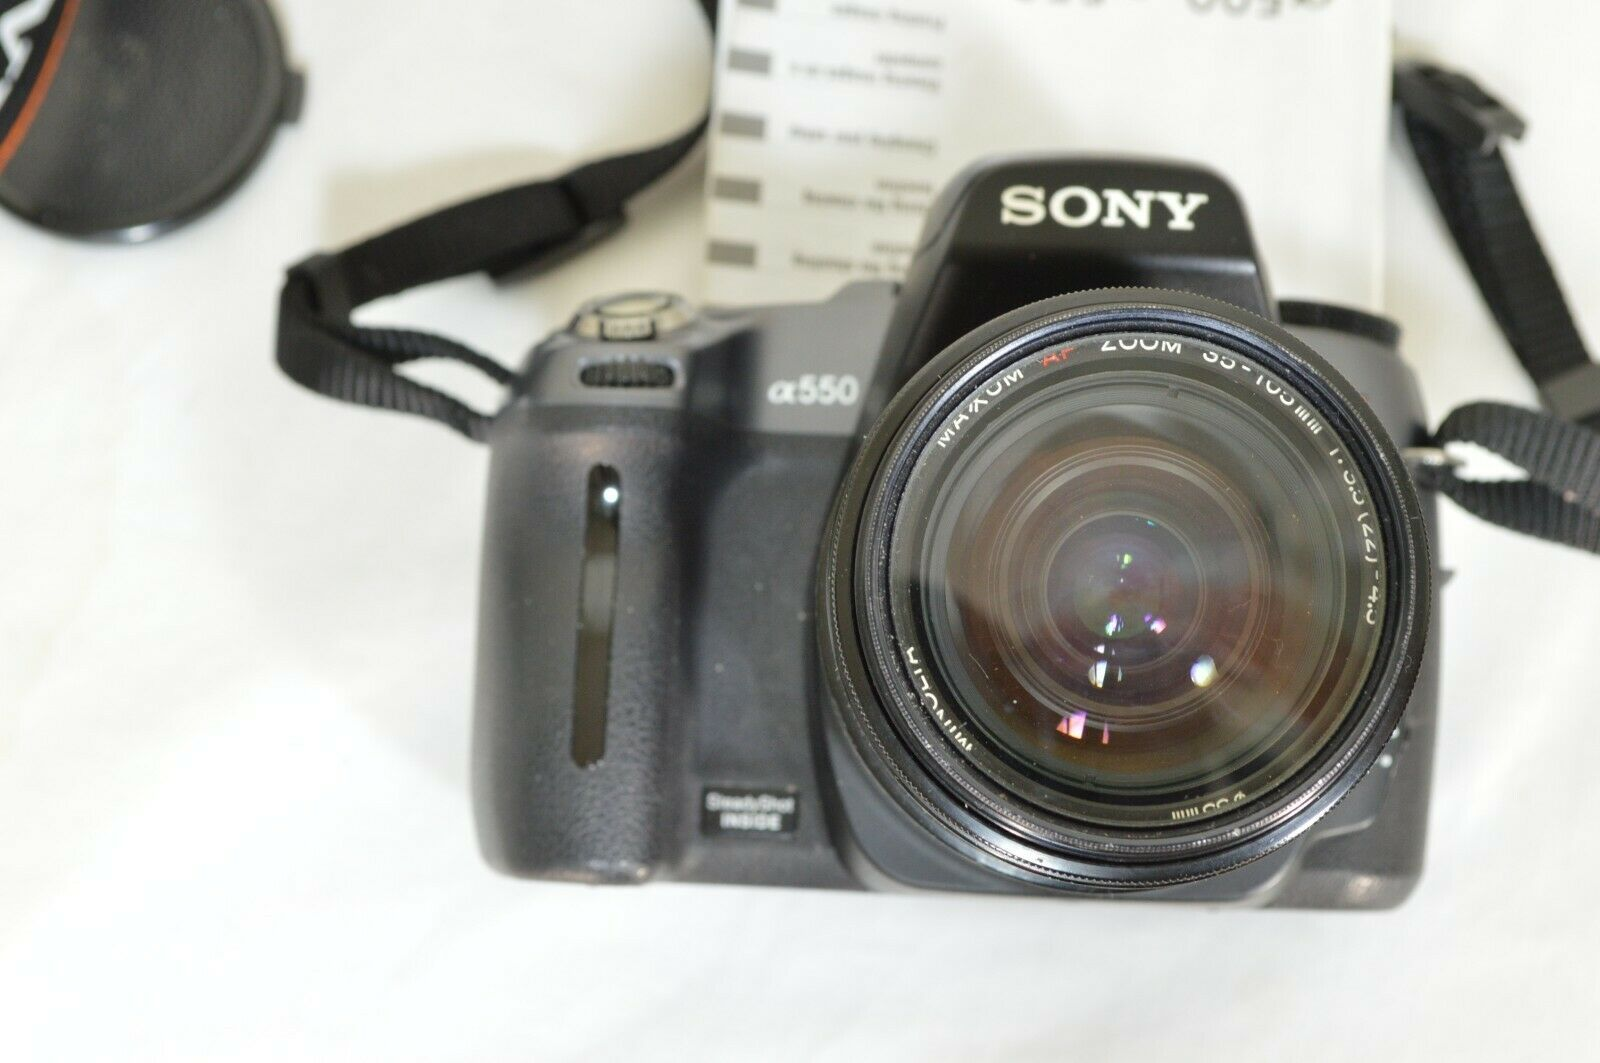 Sony Alpha DSLR-A550 14.2MP DSLR Camera Minolta Maxxum 35-105mm f/3.5-4.5 AF Len image 6